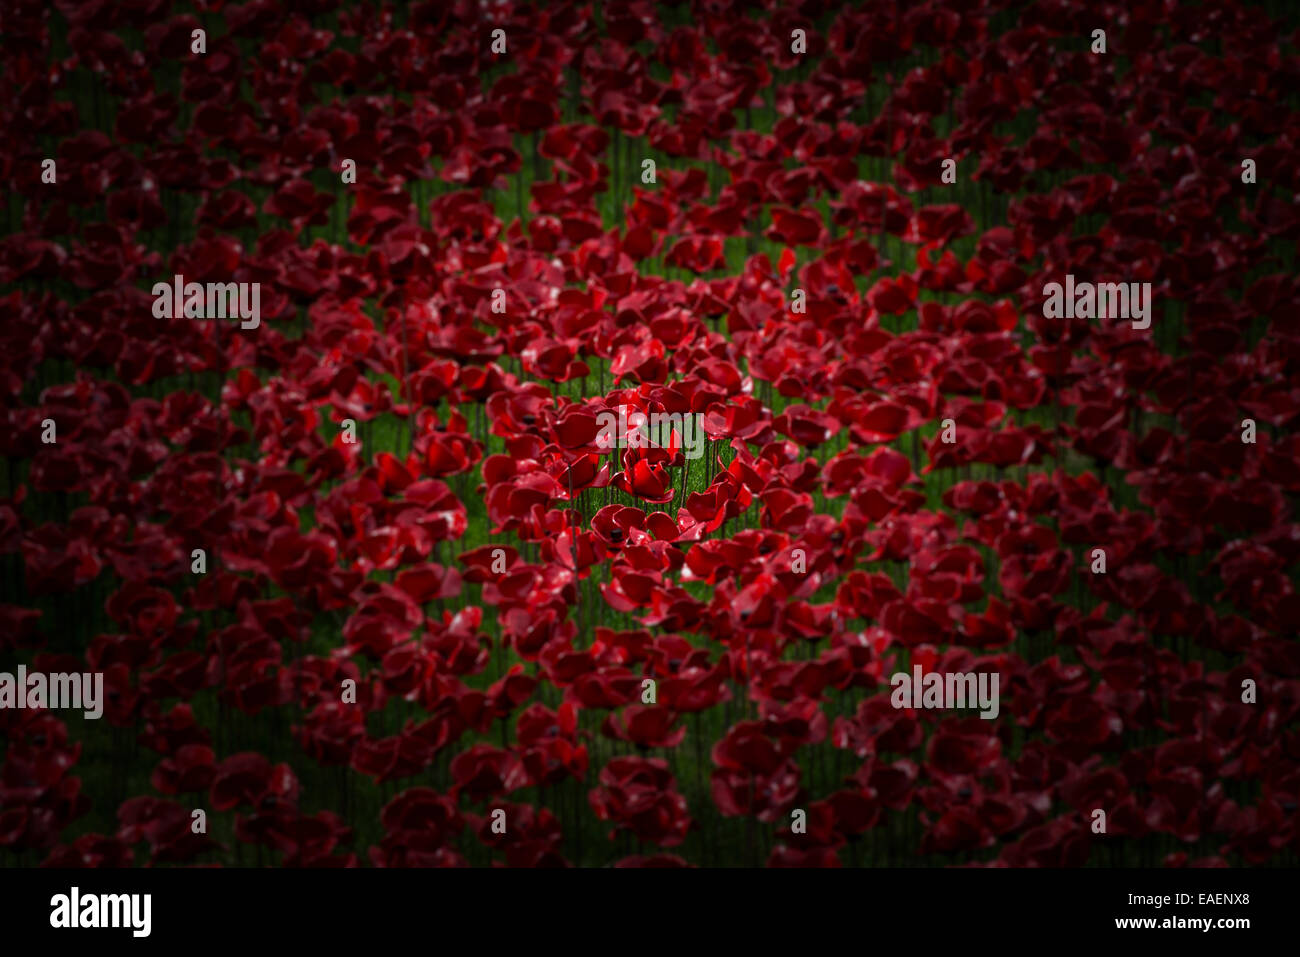 'Amongst the many the individuals' -  a vignette of the 888,246 poppies in the 'Blood Swept Lands and - Stock Image